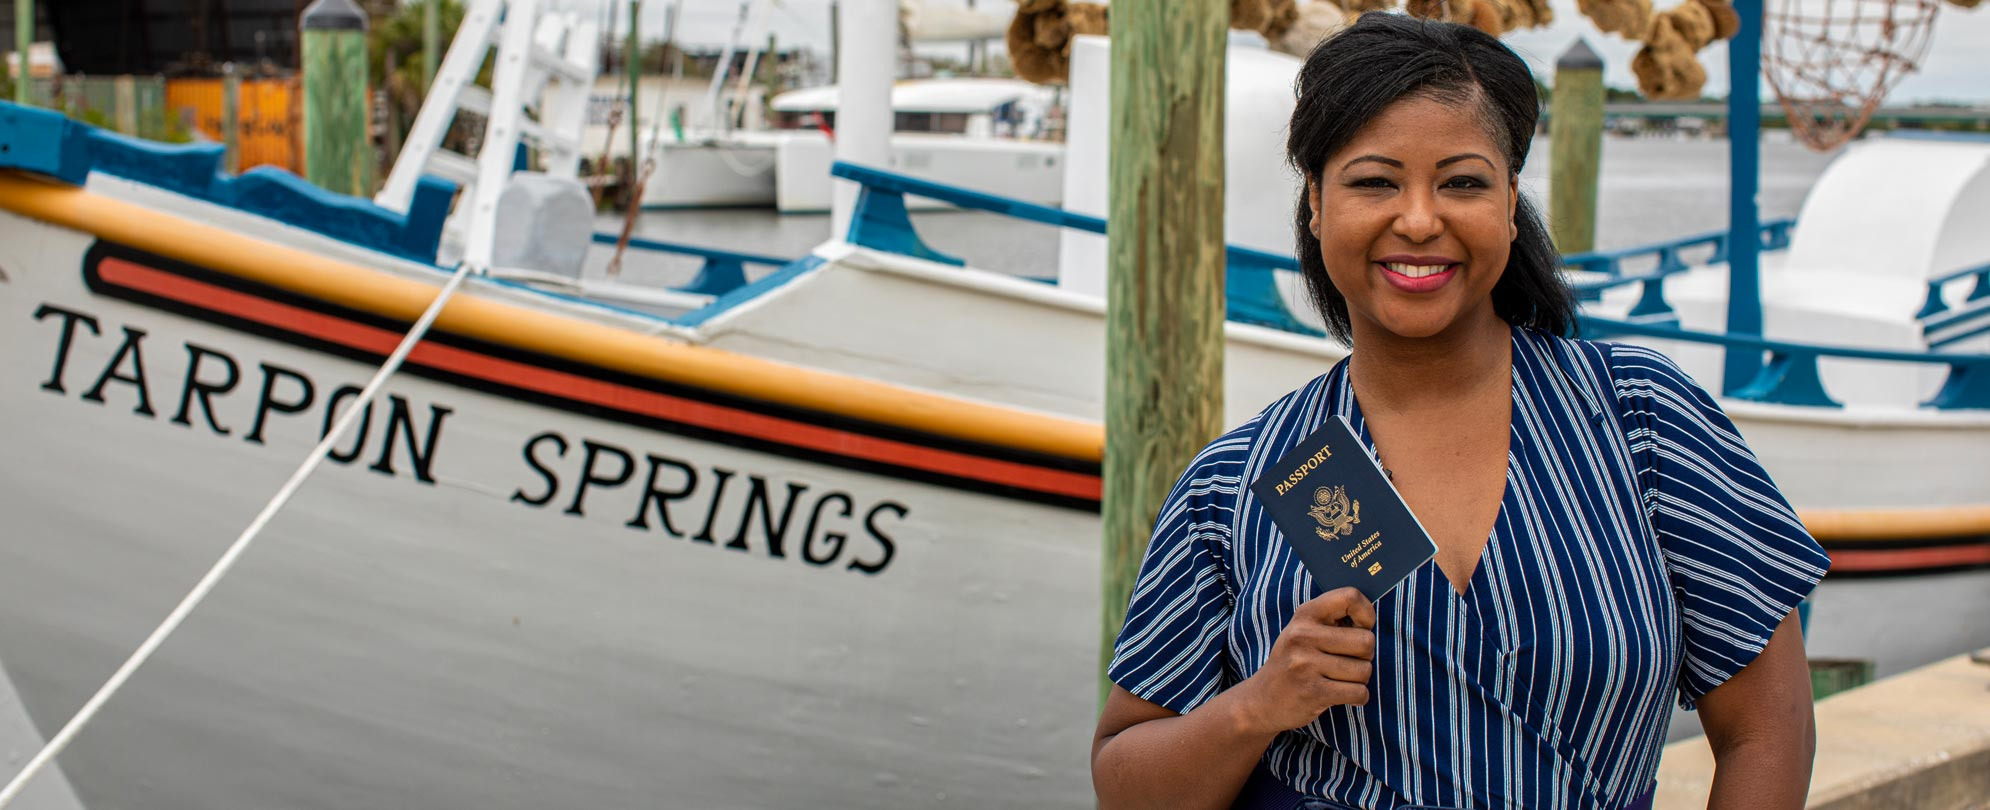 A woman smiling and holding up a passport in front of a Tarpon Springs boat.